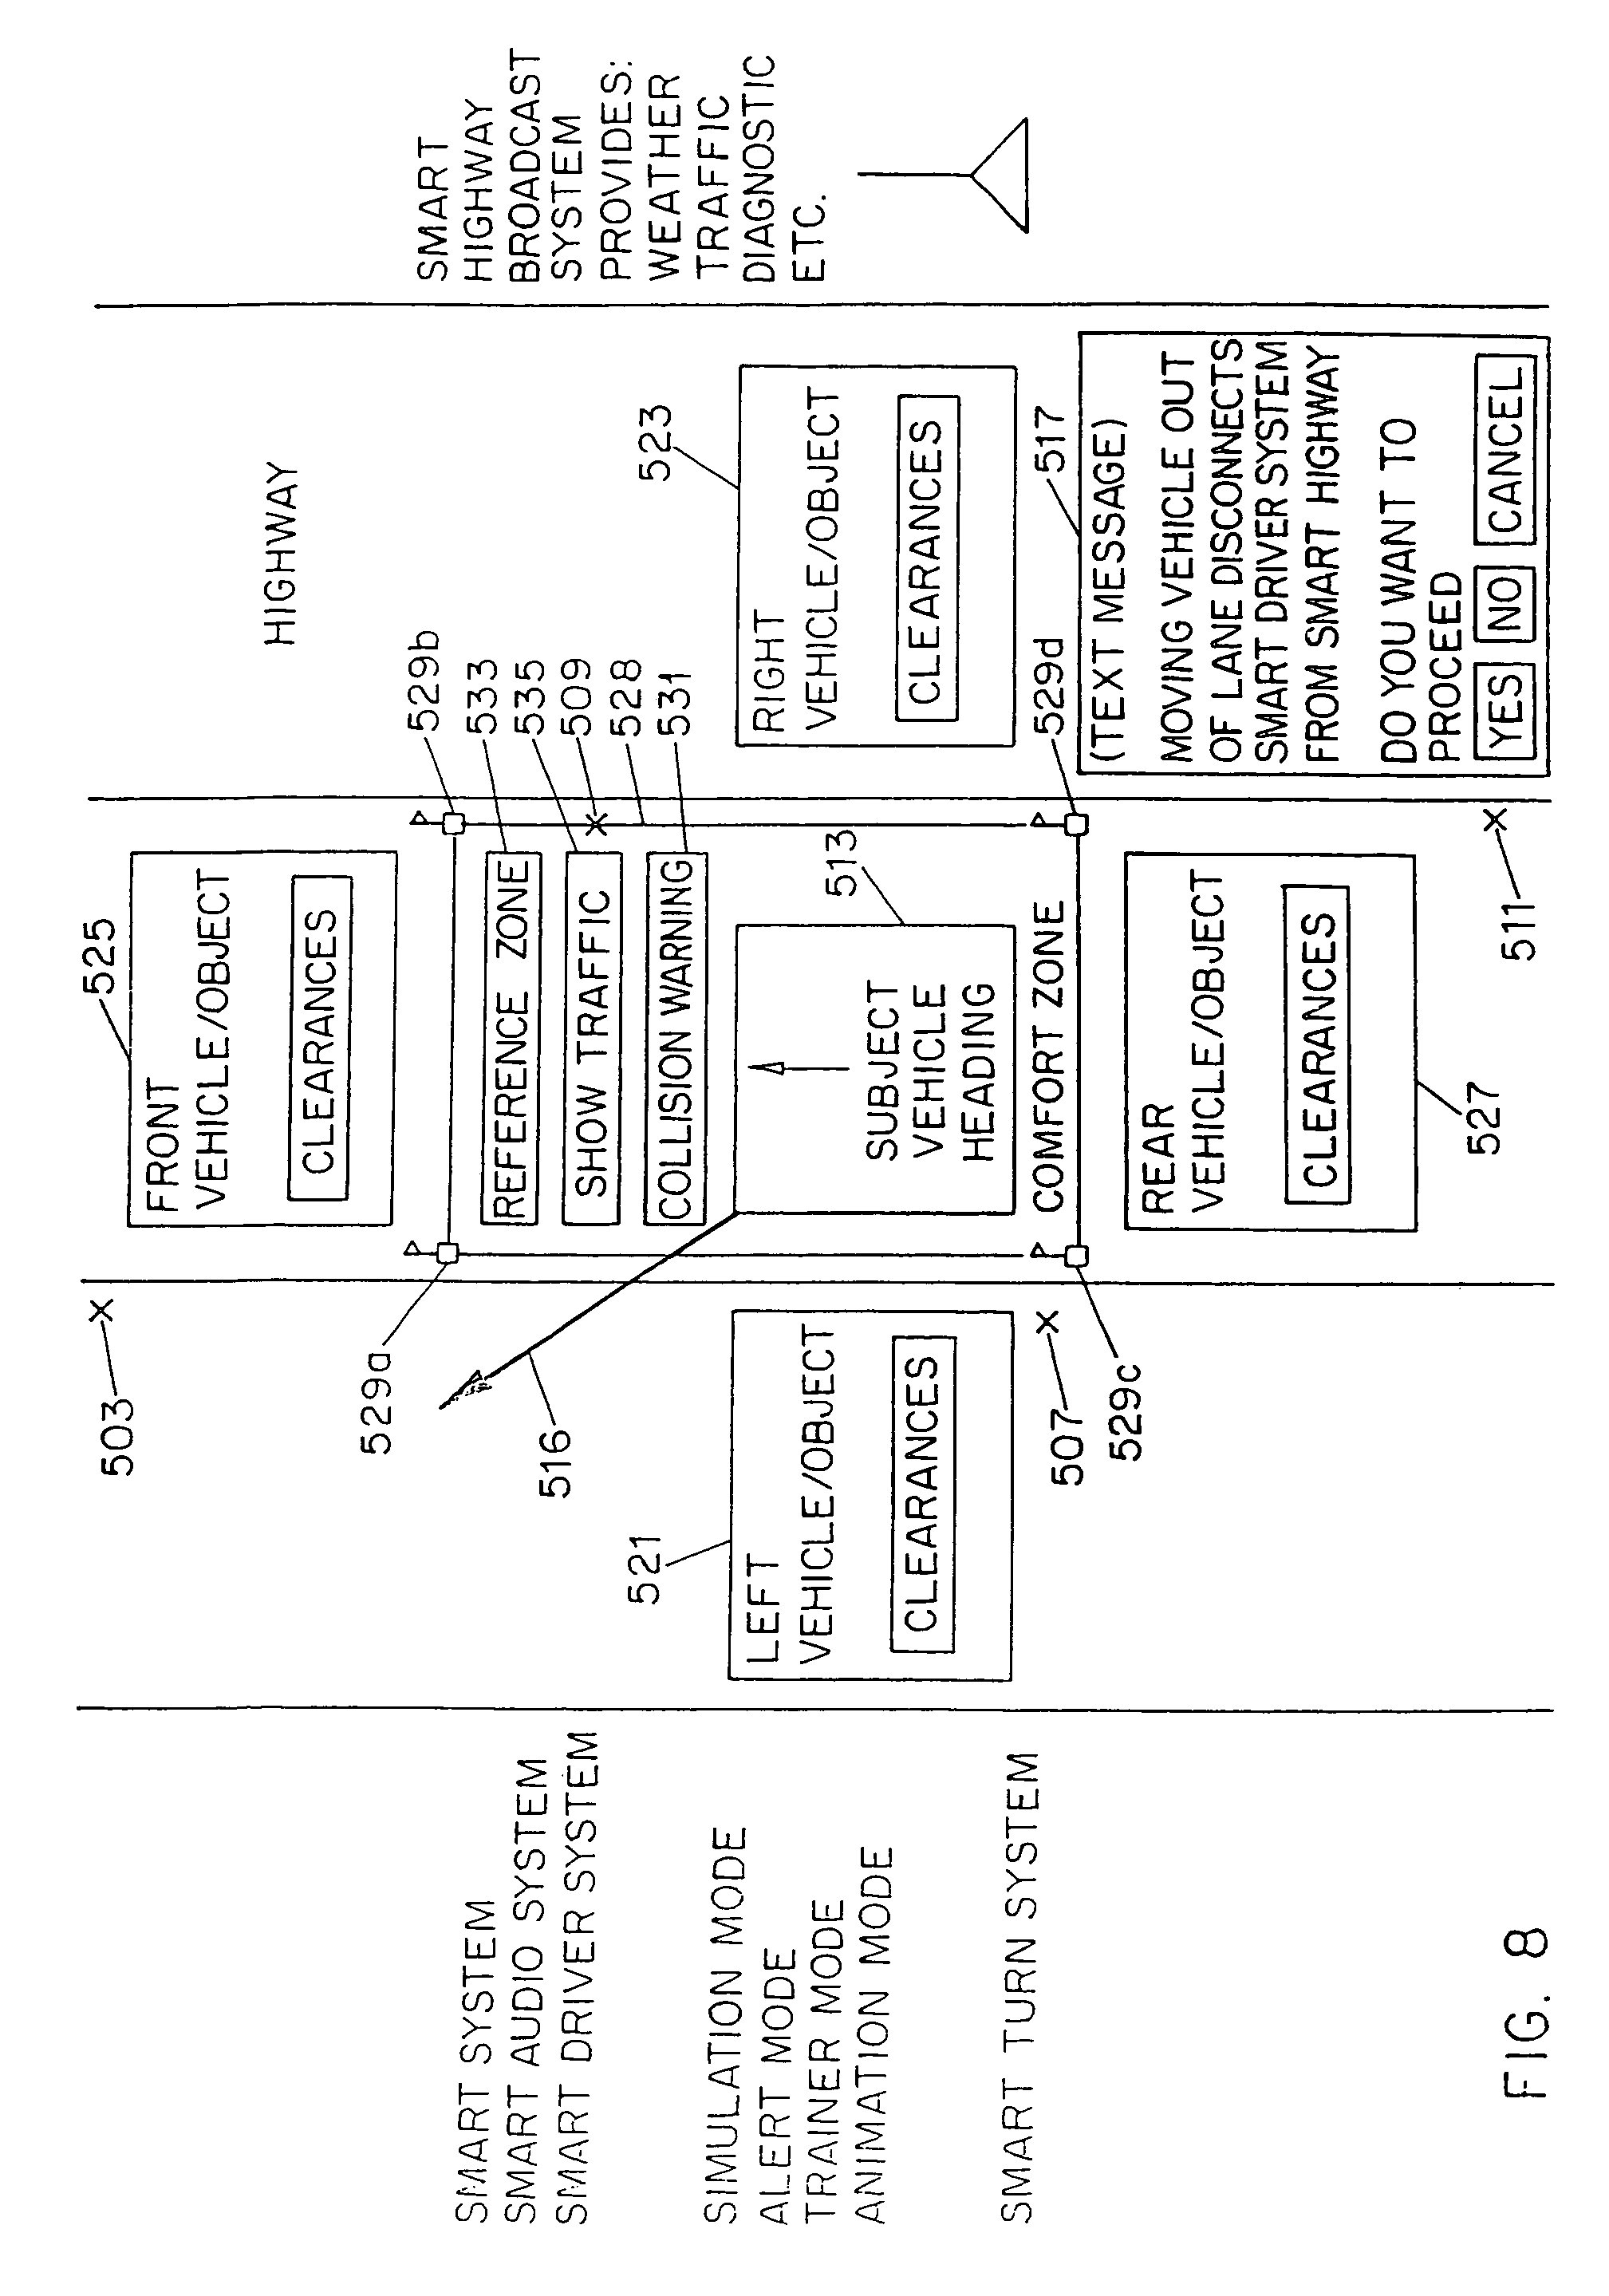 Patent Us7741959 Centralized Control And Management System For Windshield Washer Fluid Tank Besides Bmw Fuse Box Diagram Moreover Drawing